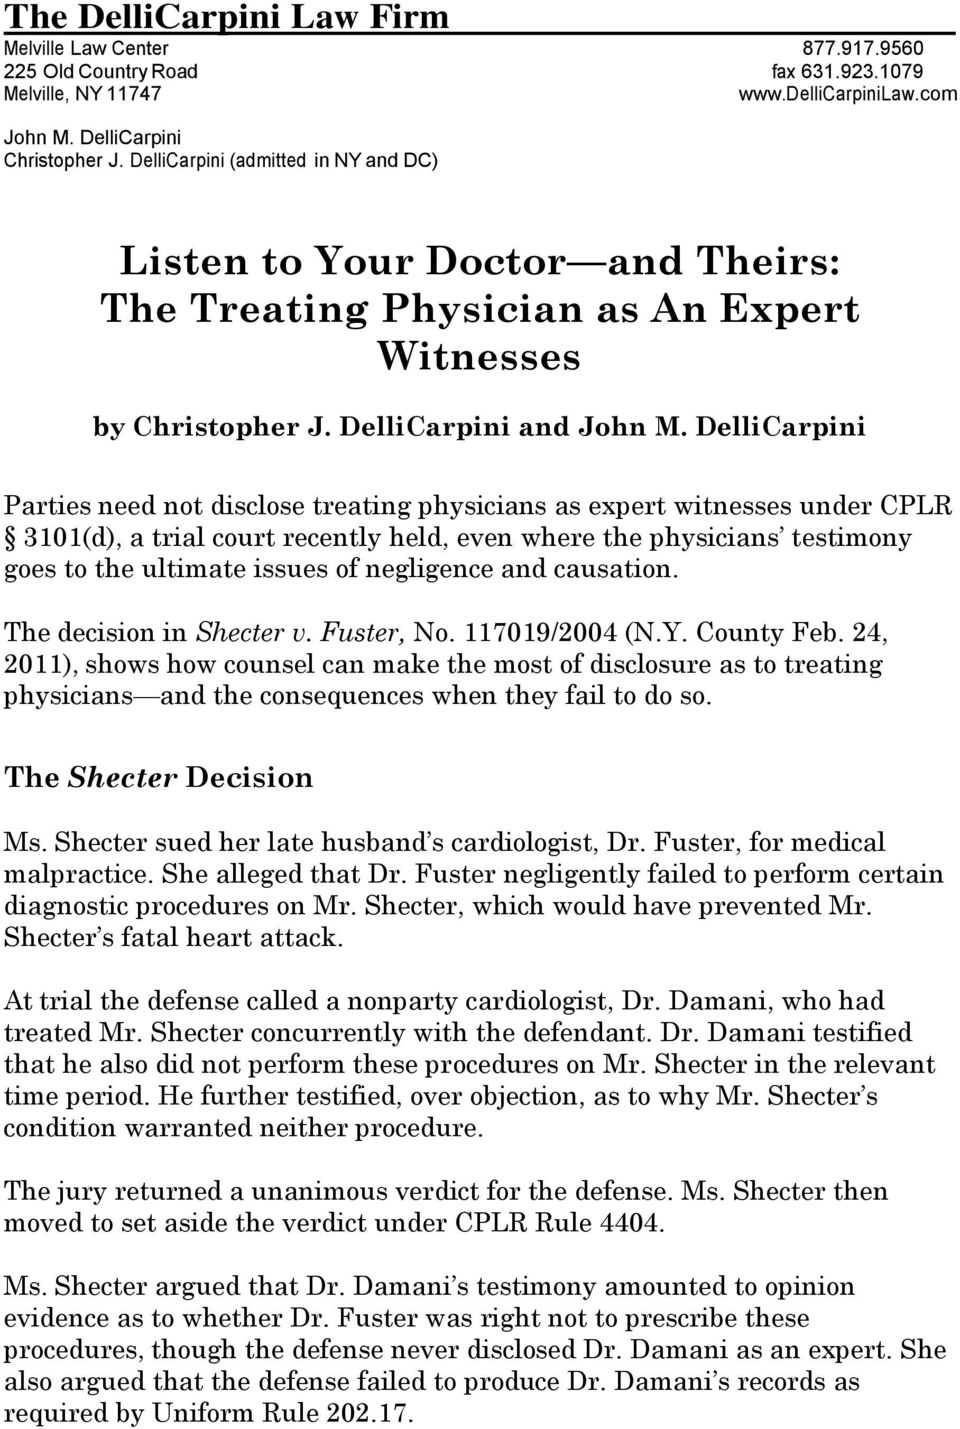 DelliCarpini Parties need not disclose treating physicians as expert witnesses under CPLR 3101(d), a trial court recently held, even where the physicians testimony goes to the ultimate issues of